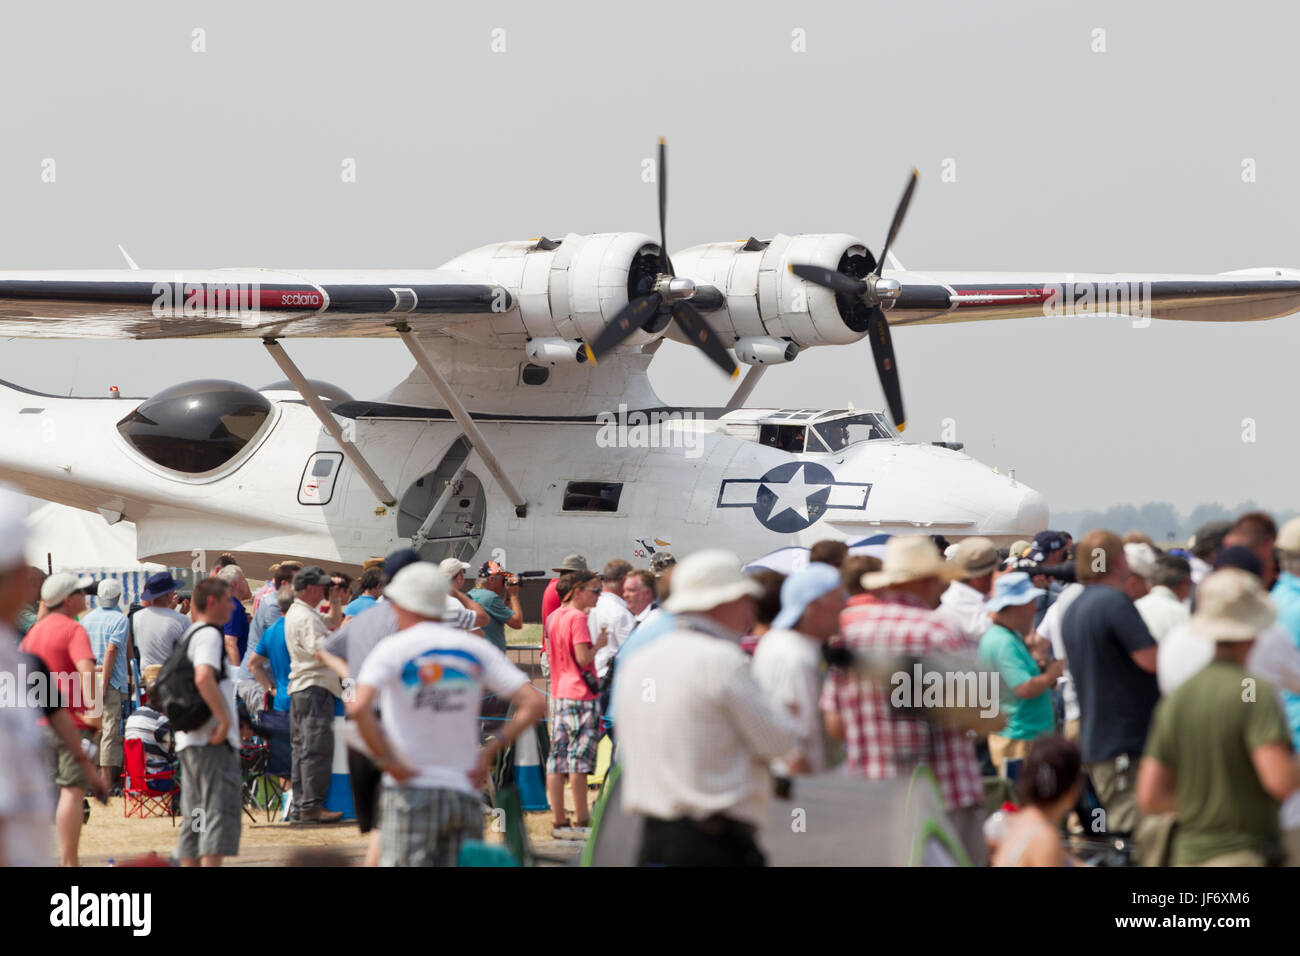 Plain Sailings Consolidated PBY Catalina Seaplane at the Royal International Air Tattoo, Fairford RAF, 2013 - Stock Image